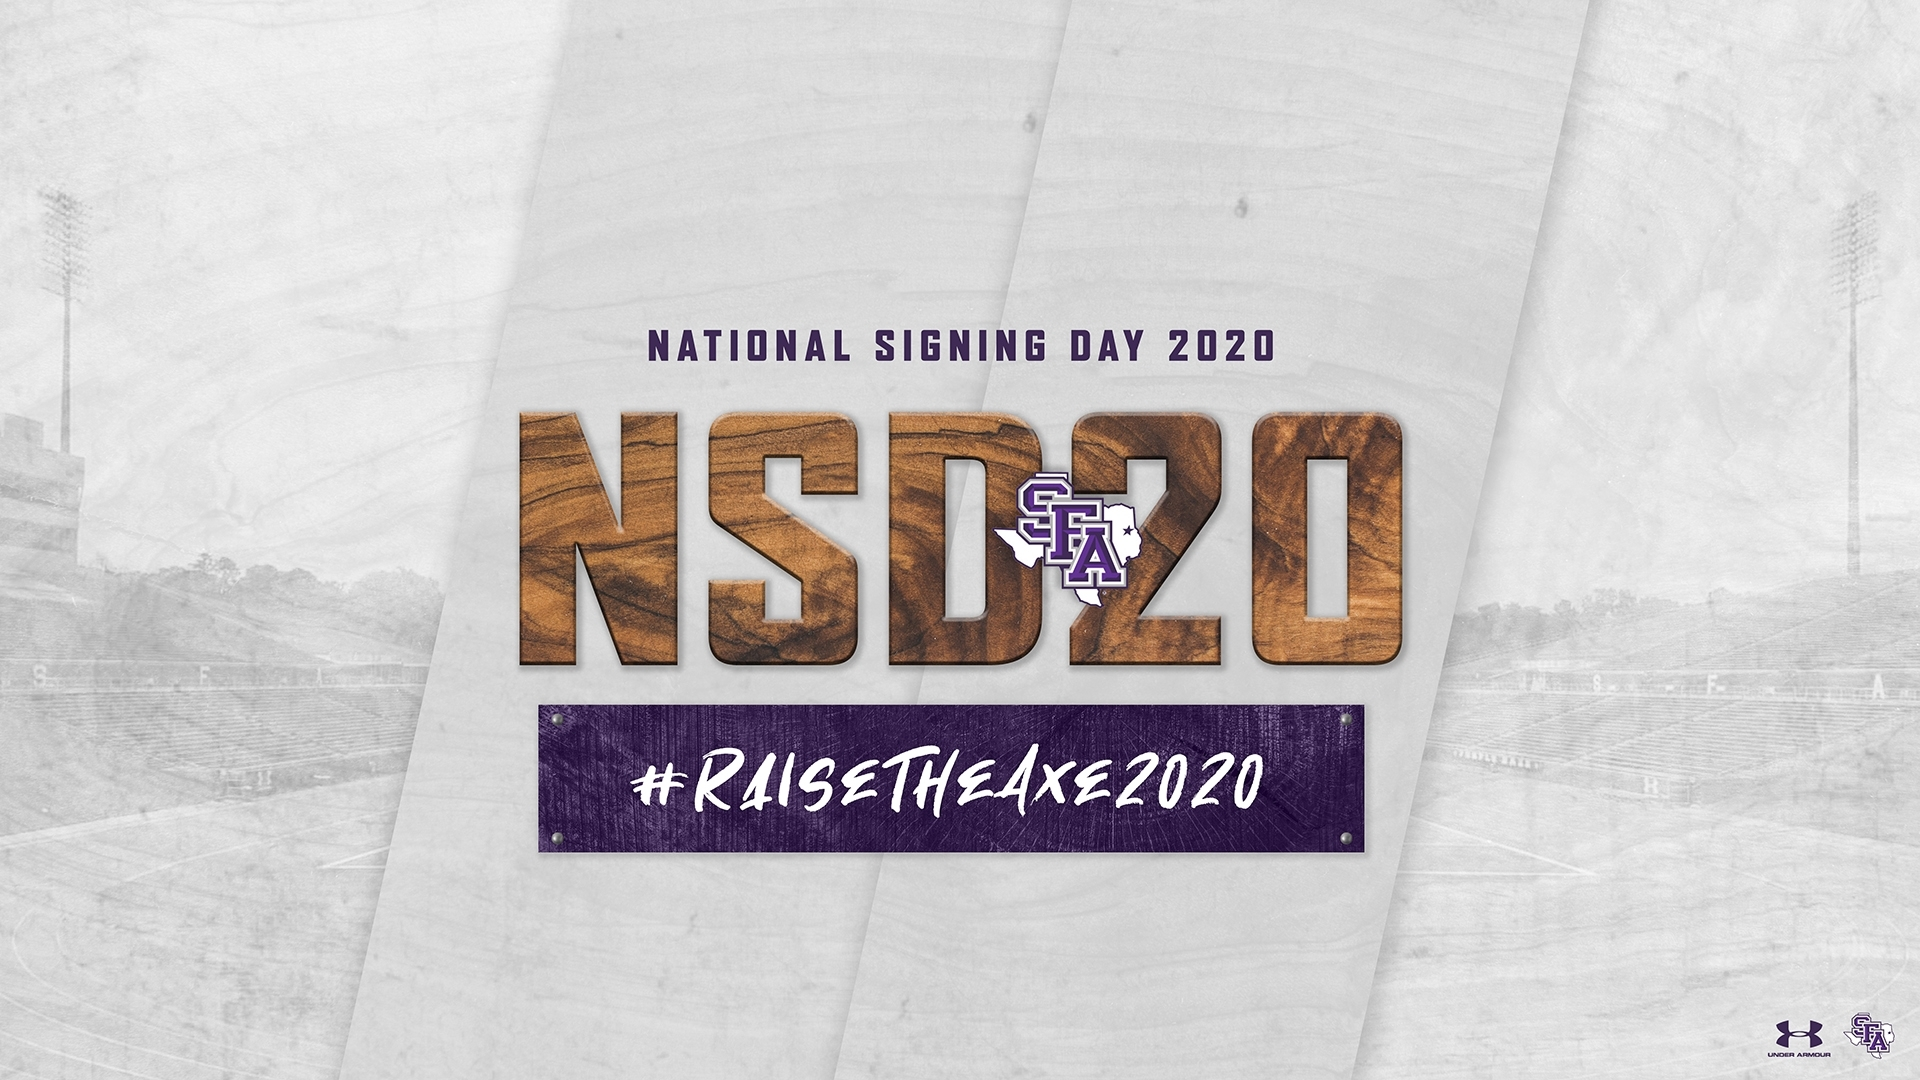 Carthel Completes 2020 Nsd Class - Stephen F. Austin State with regard to Stephen F Austin Preview Day 2020